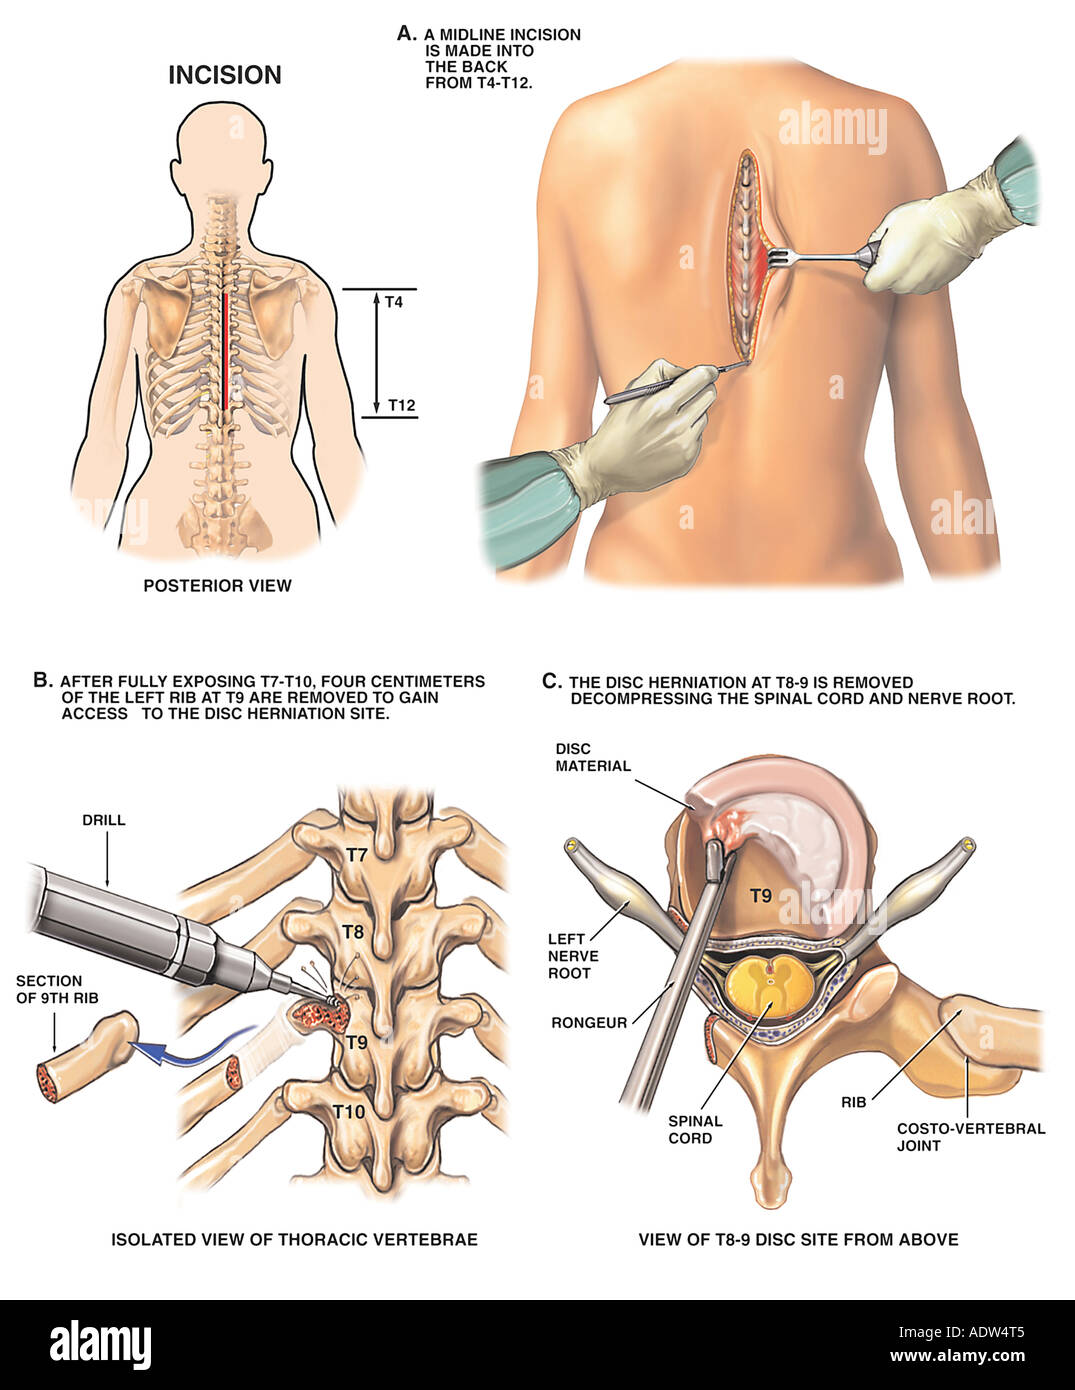 Back Surgery T8t9 Thoracic Discectomy Procedure Stock Photo